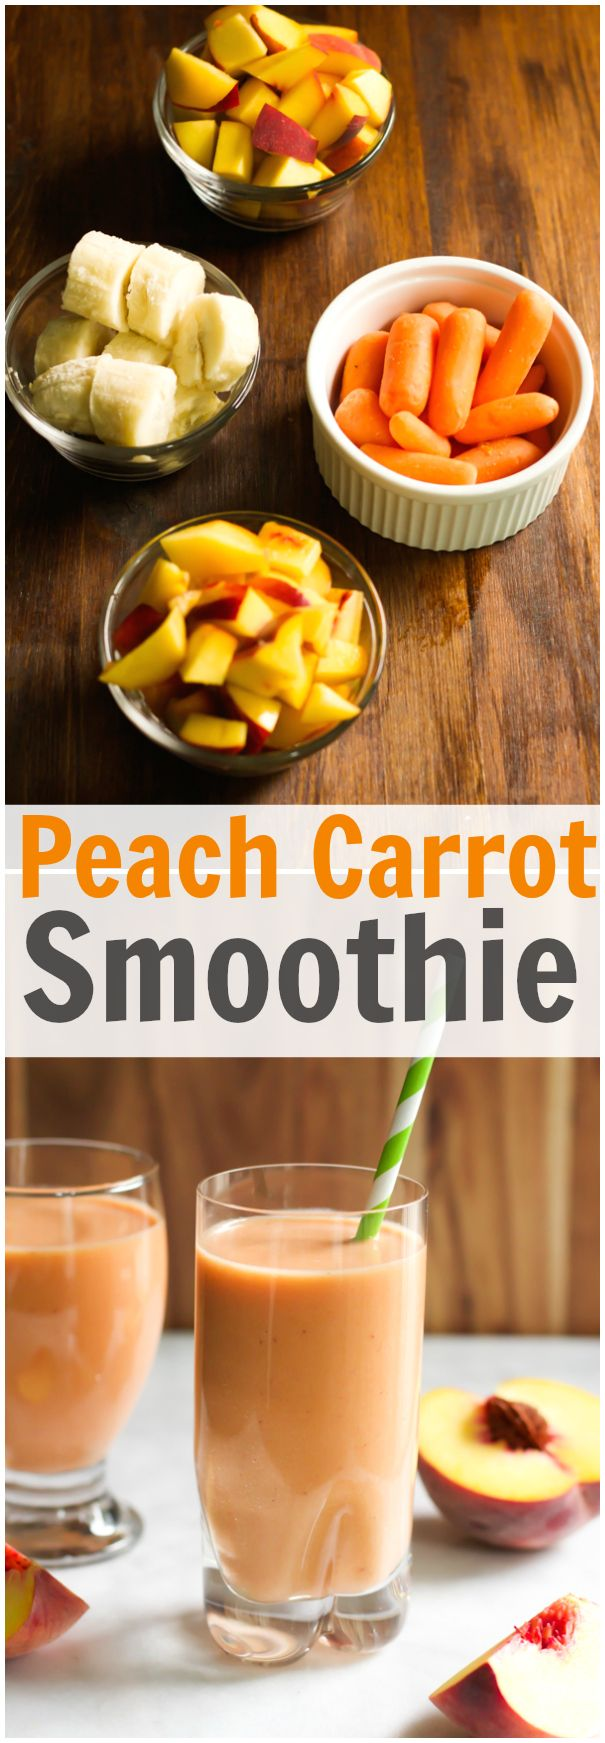 This Peach Carrot Smoothie is dairy-free, delicious and has only 4 ingredients: banana, peach, coconut water and greek yogurt. Enjoy! primaverakitchen.com: